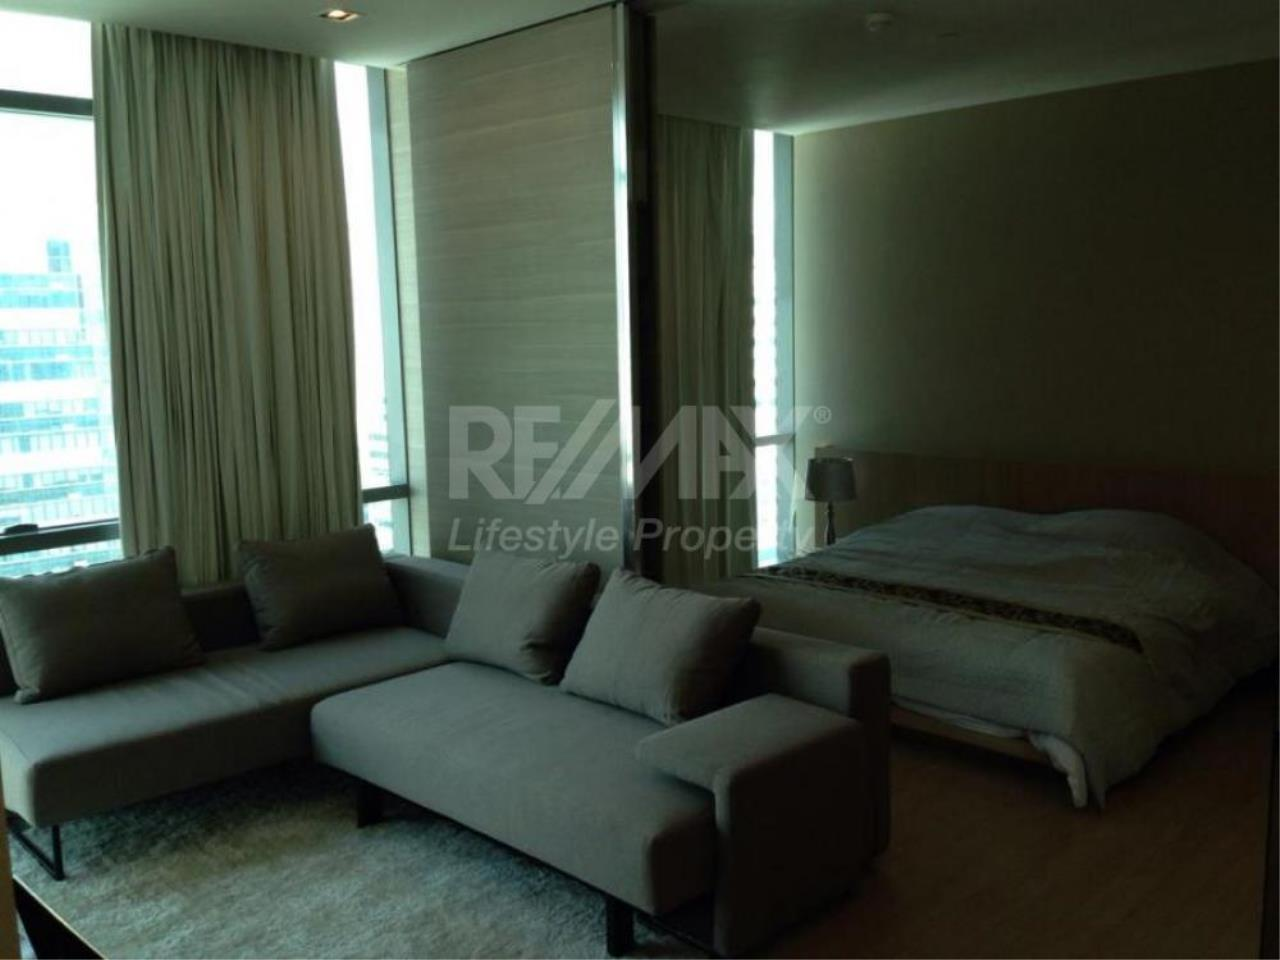 RE/MAX LifeStyle Property Agency's The Room Sukhumvit 21 12